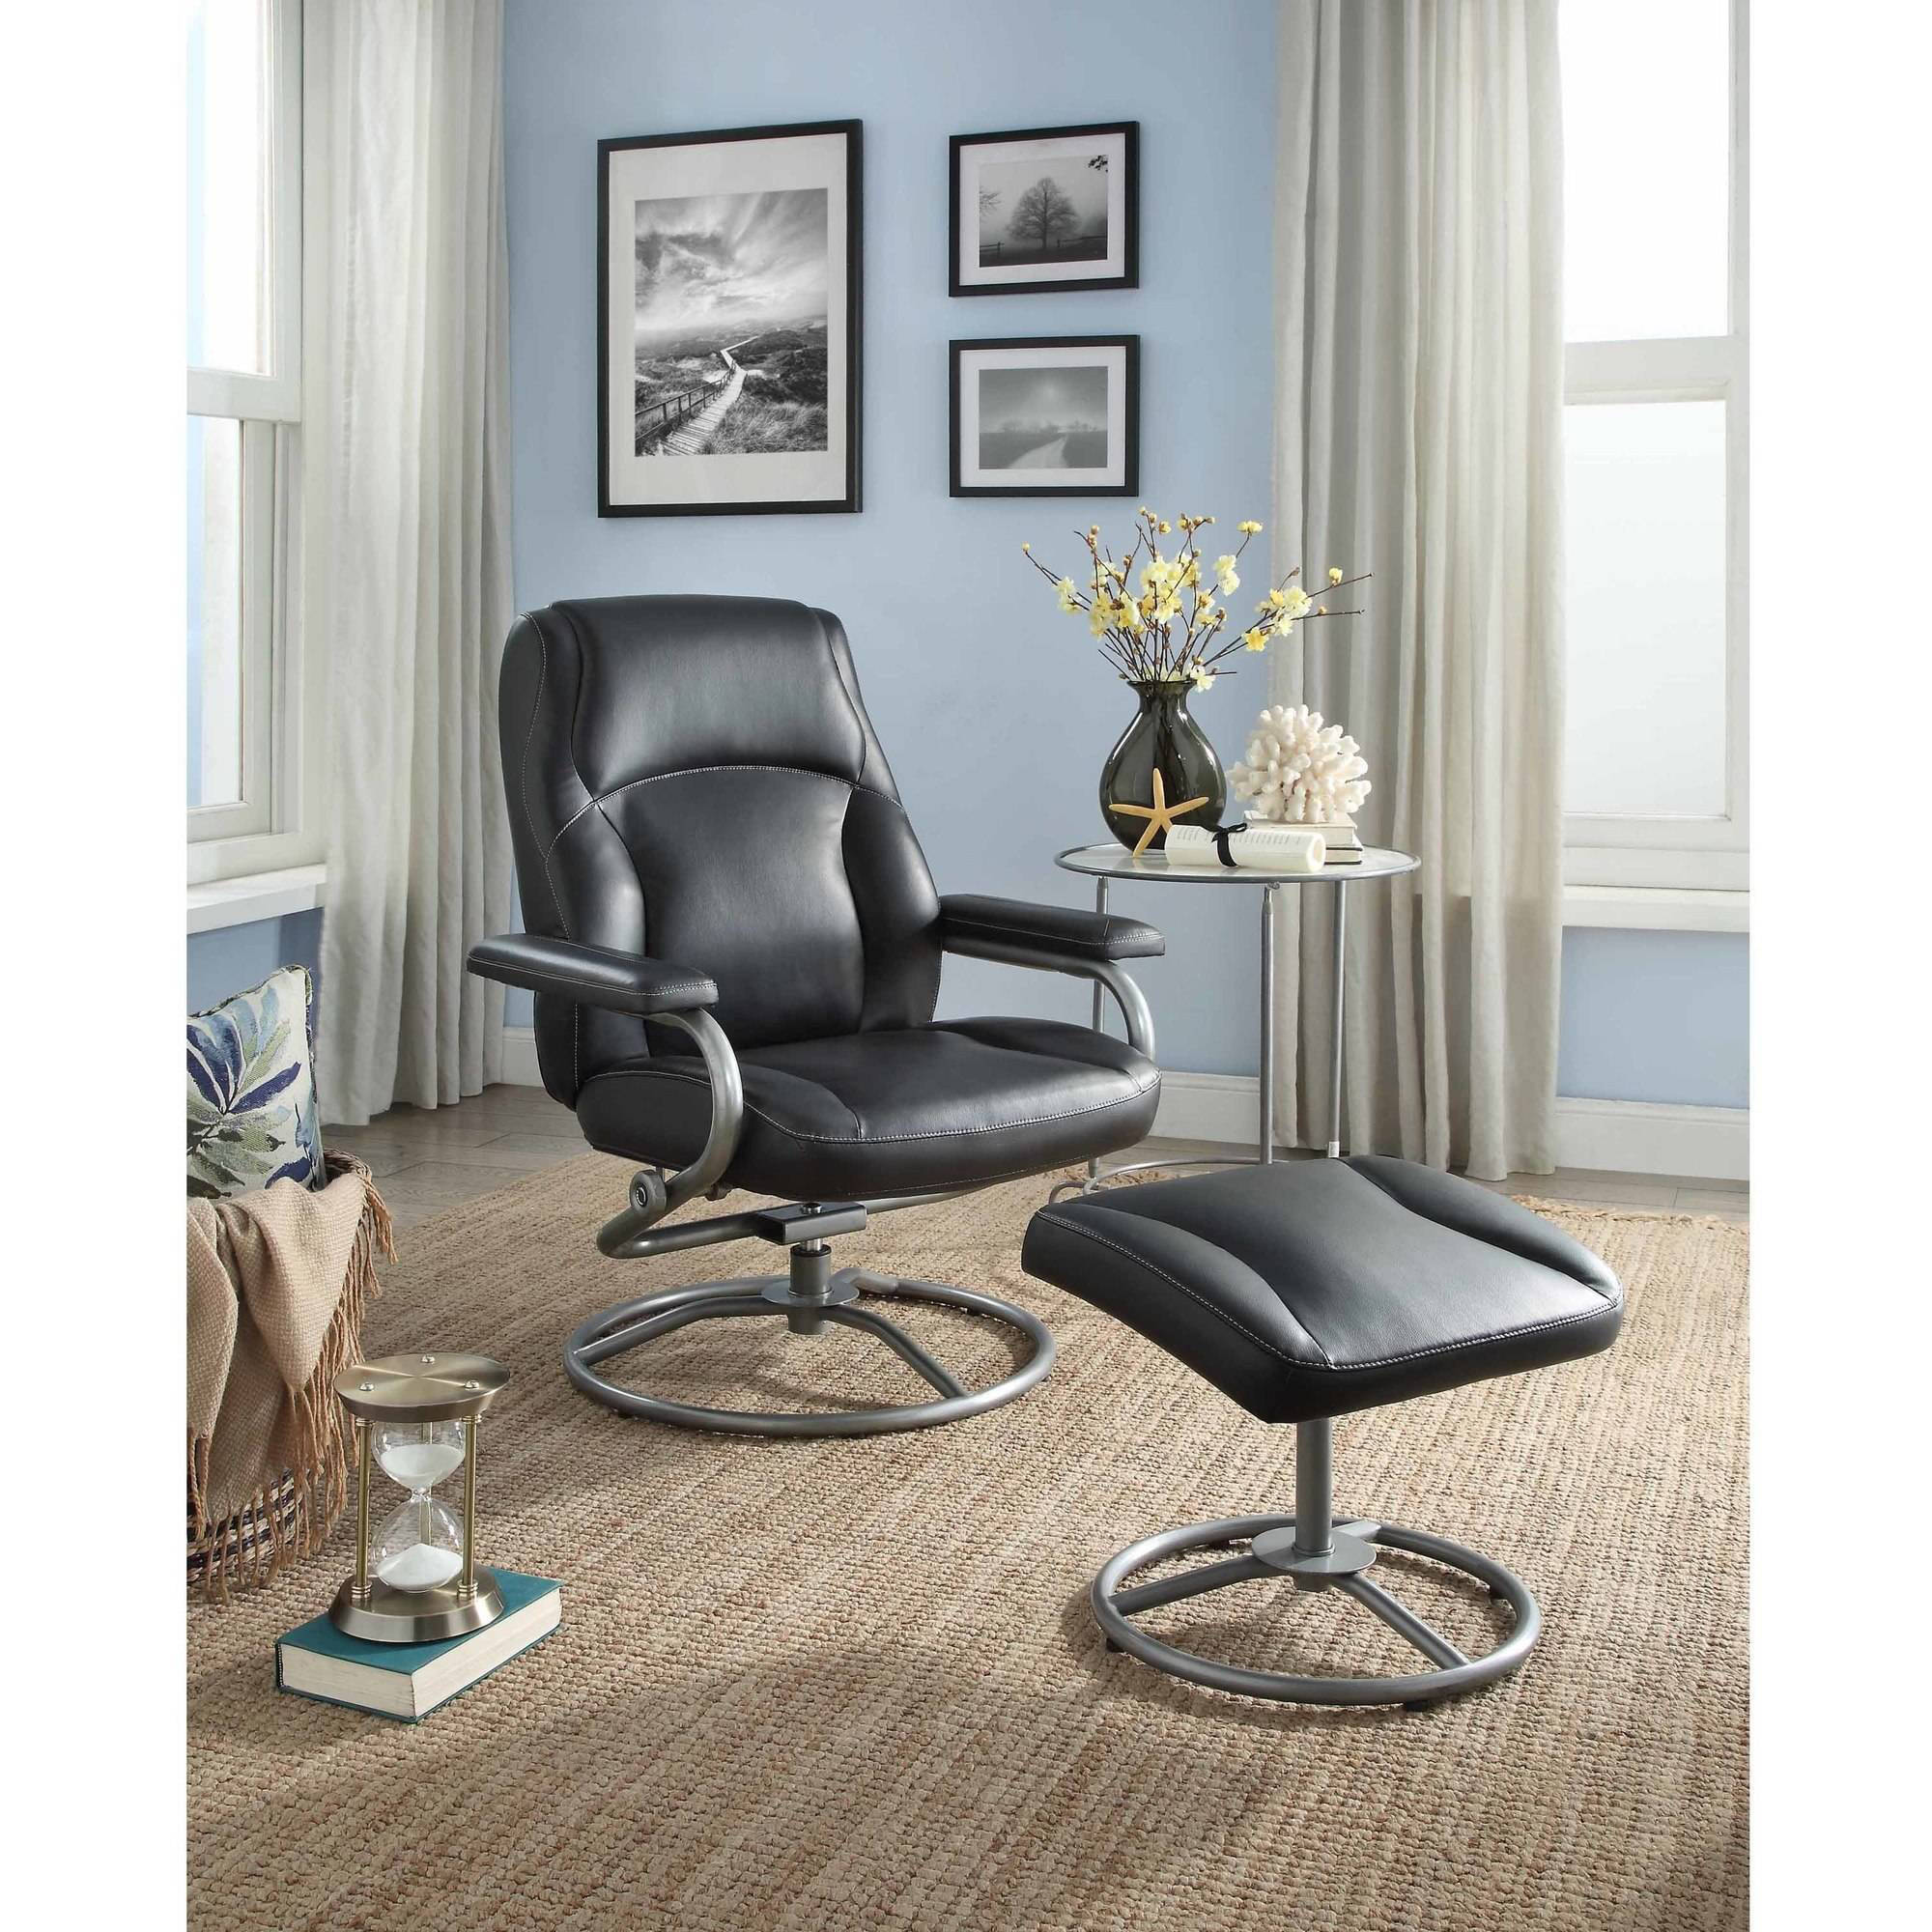 Recliner and Ottoman Set, Black